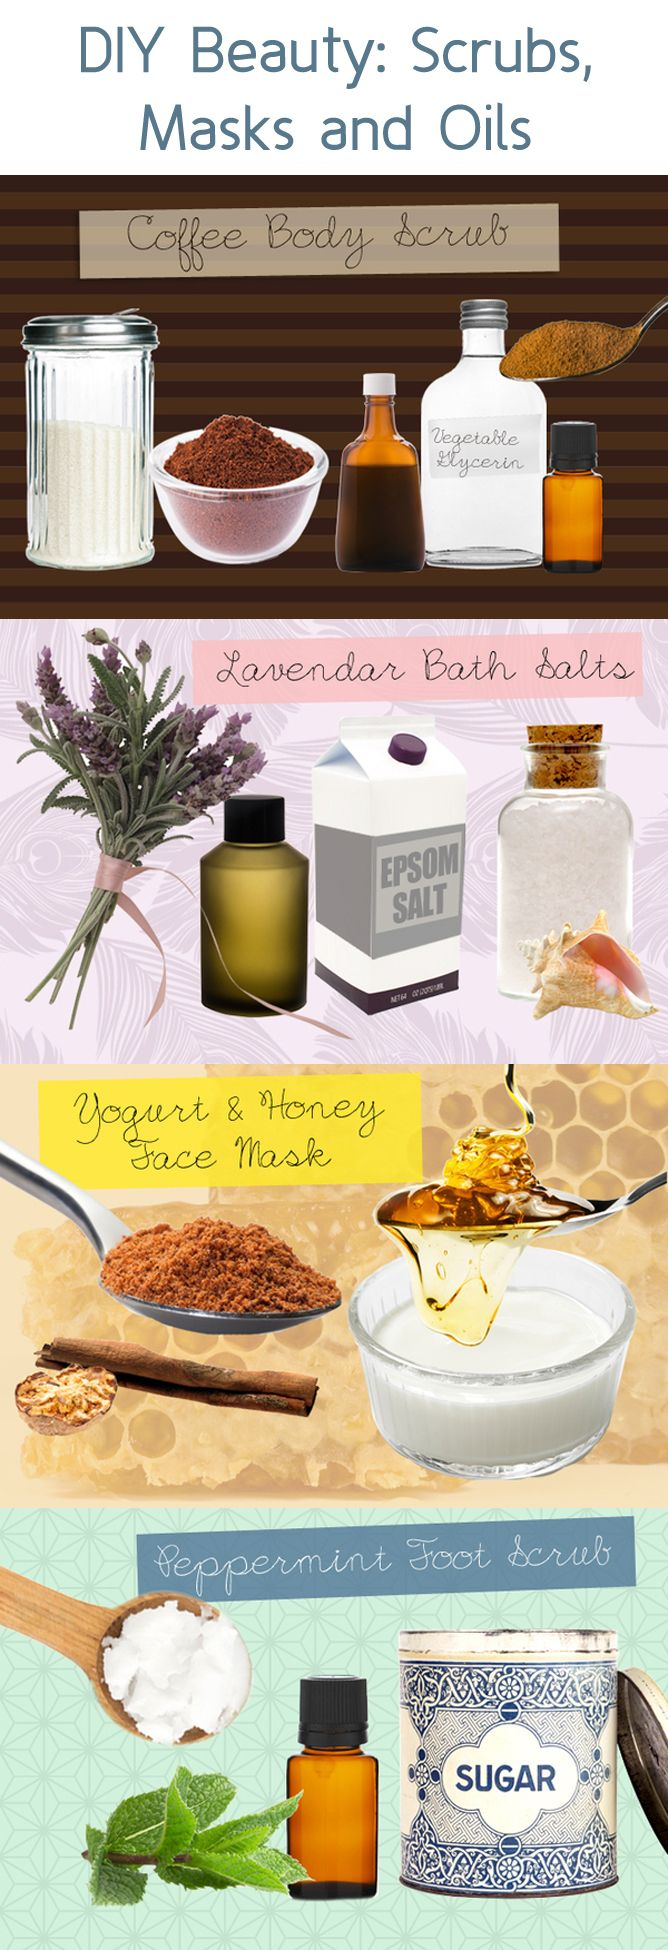 DIY Beauty: Scrubs, Masks and Oils #recipe #tutorial #how-to #mothers_day